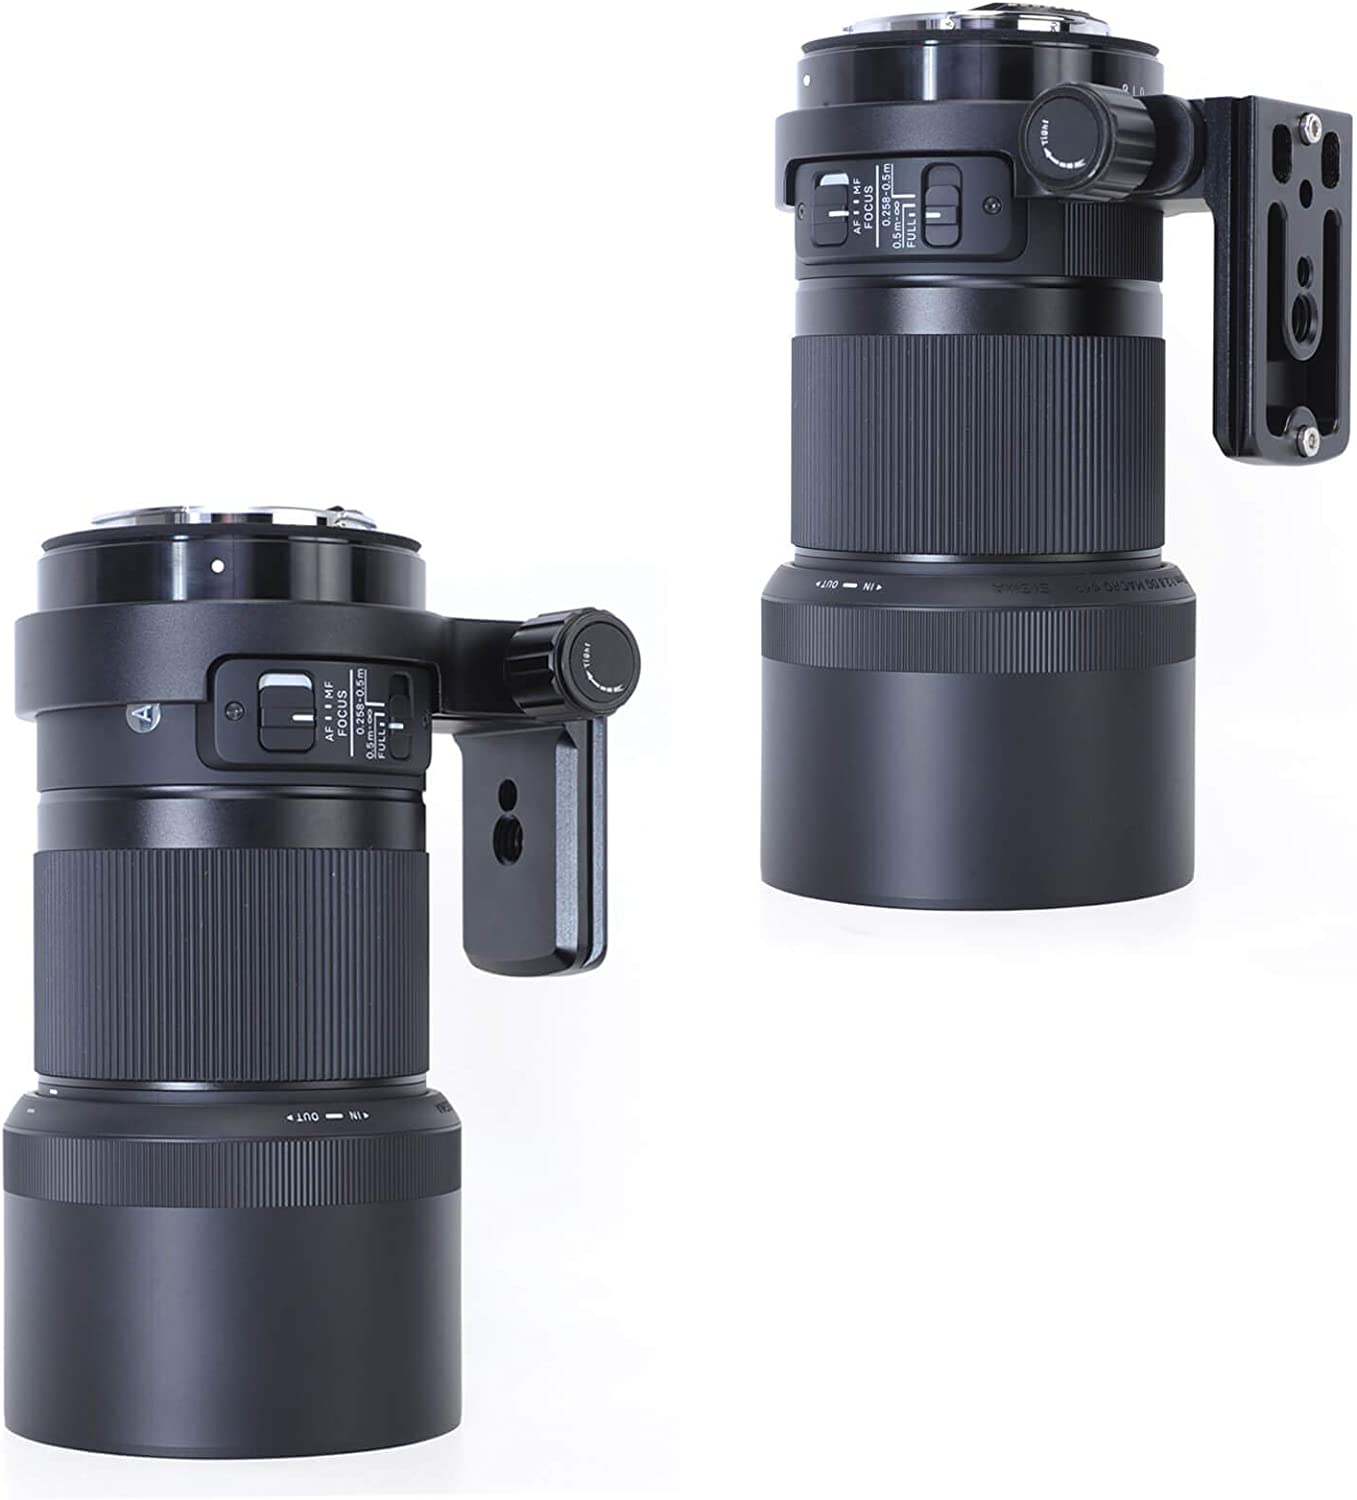 Compatible with Tripod Ball Head of Arca-Swiss Type of Canon EF, Sigma SA, Sony E and L Mount Tripod Mount Ring Metal Lens Collar with ARCA Quick Release Plate for Sigma 70mm F2.8 DG Macro Art Lens